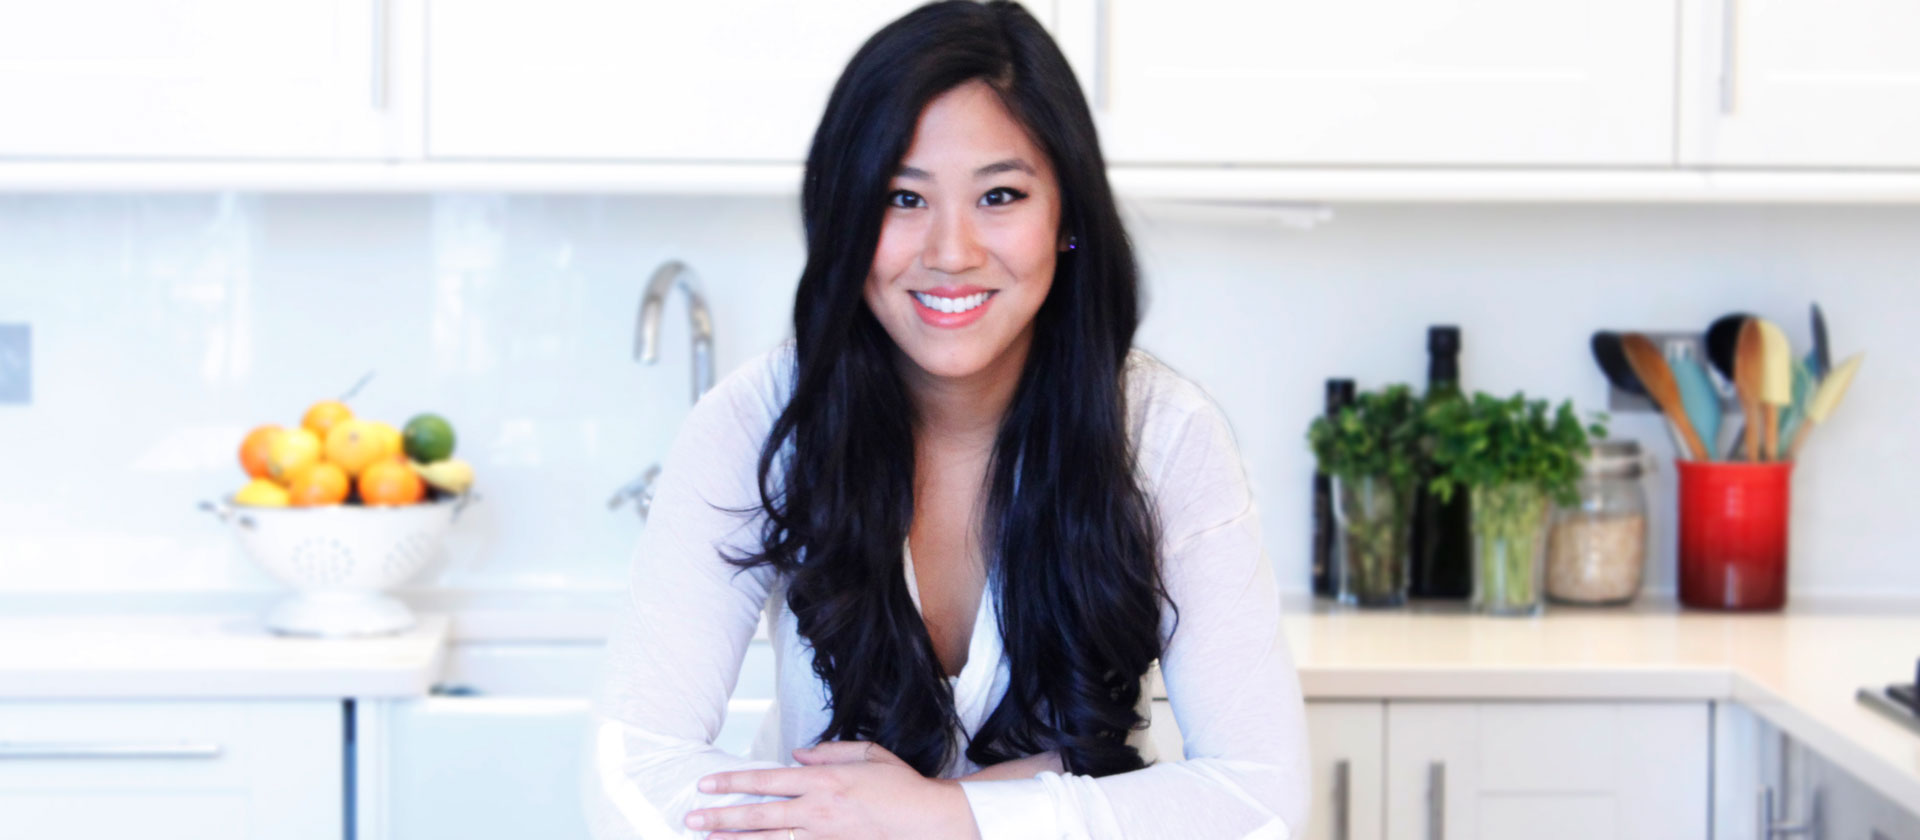 Alumni Adria Wu Success Story - Le Cordon Bleu London